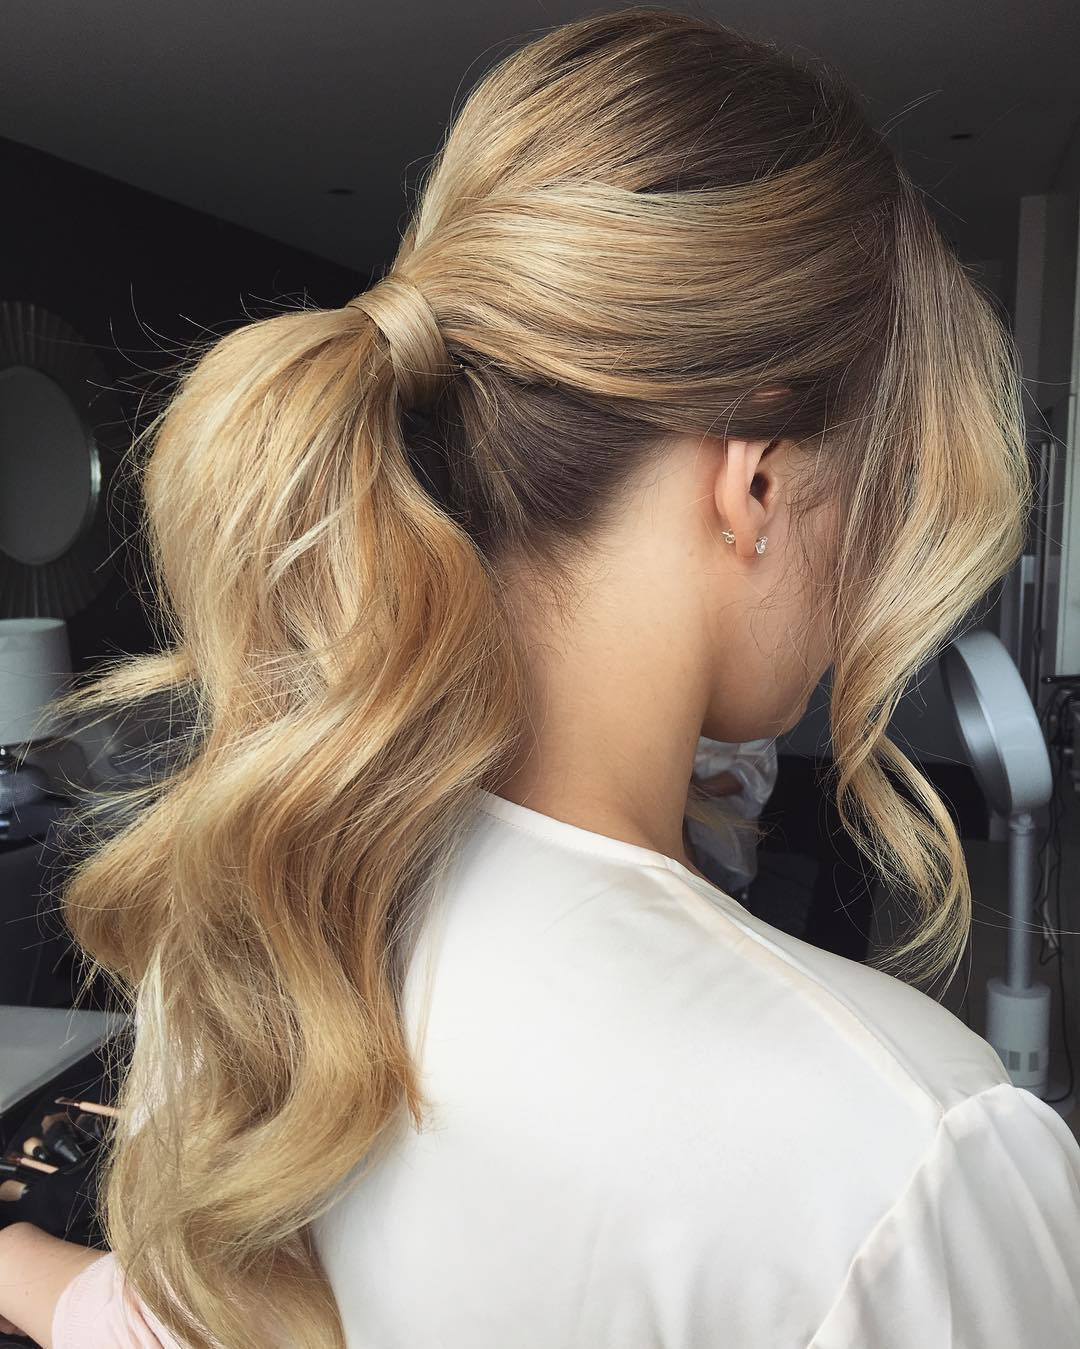 Hairstyle For Bridesmaids  40 Irresistible Hairstyles for Brides and Bridesmaids